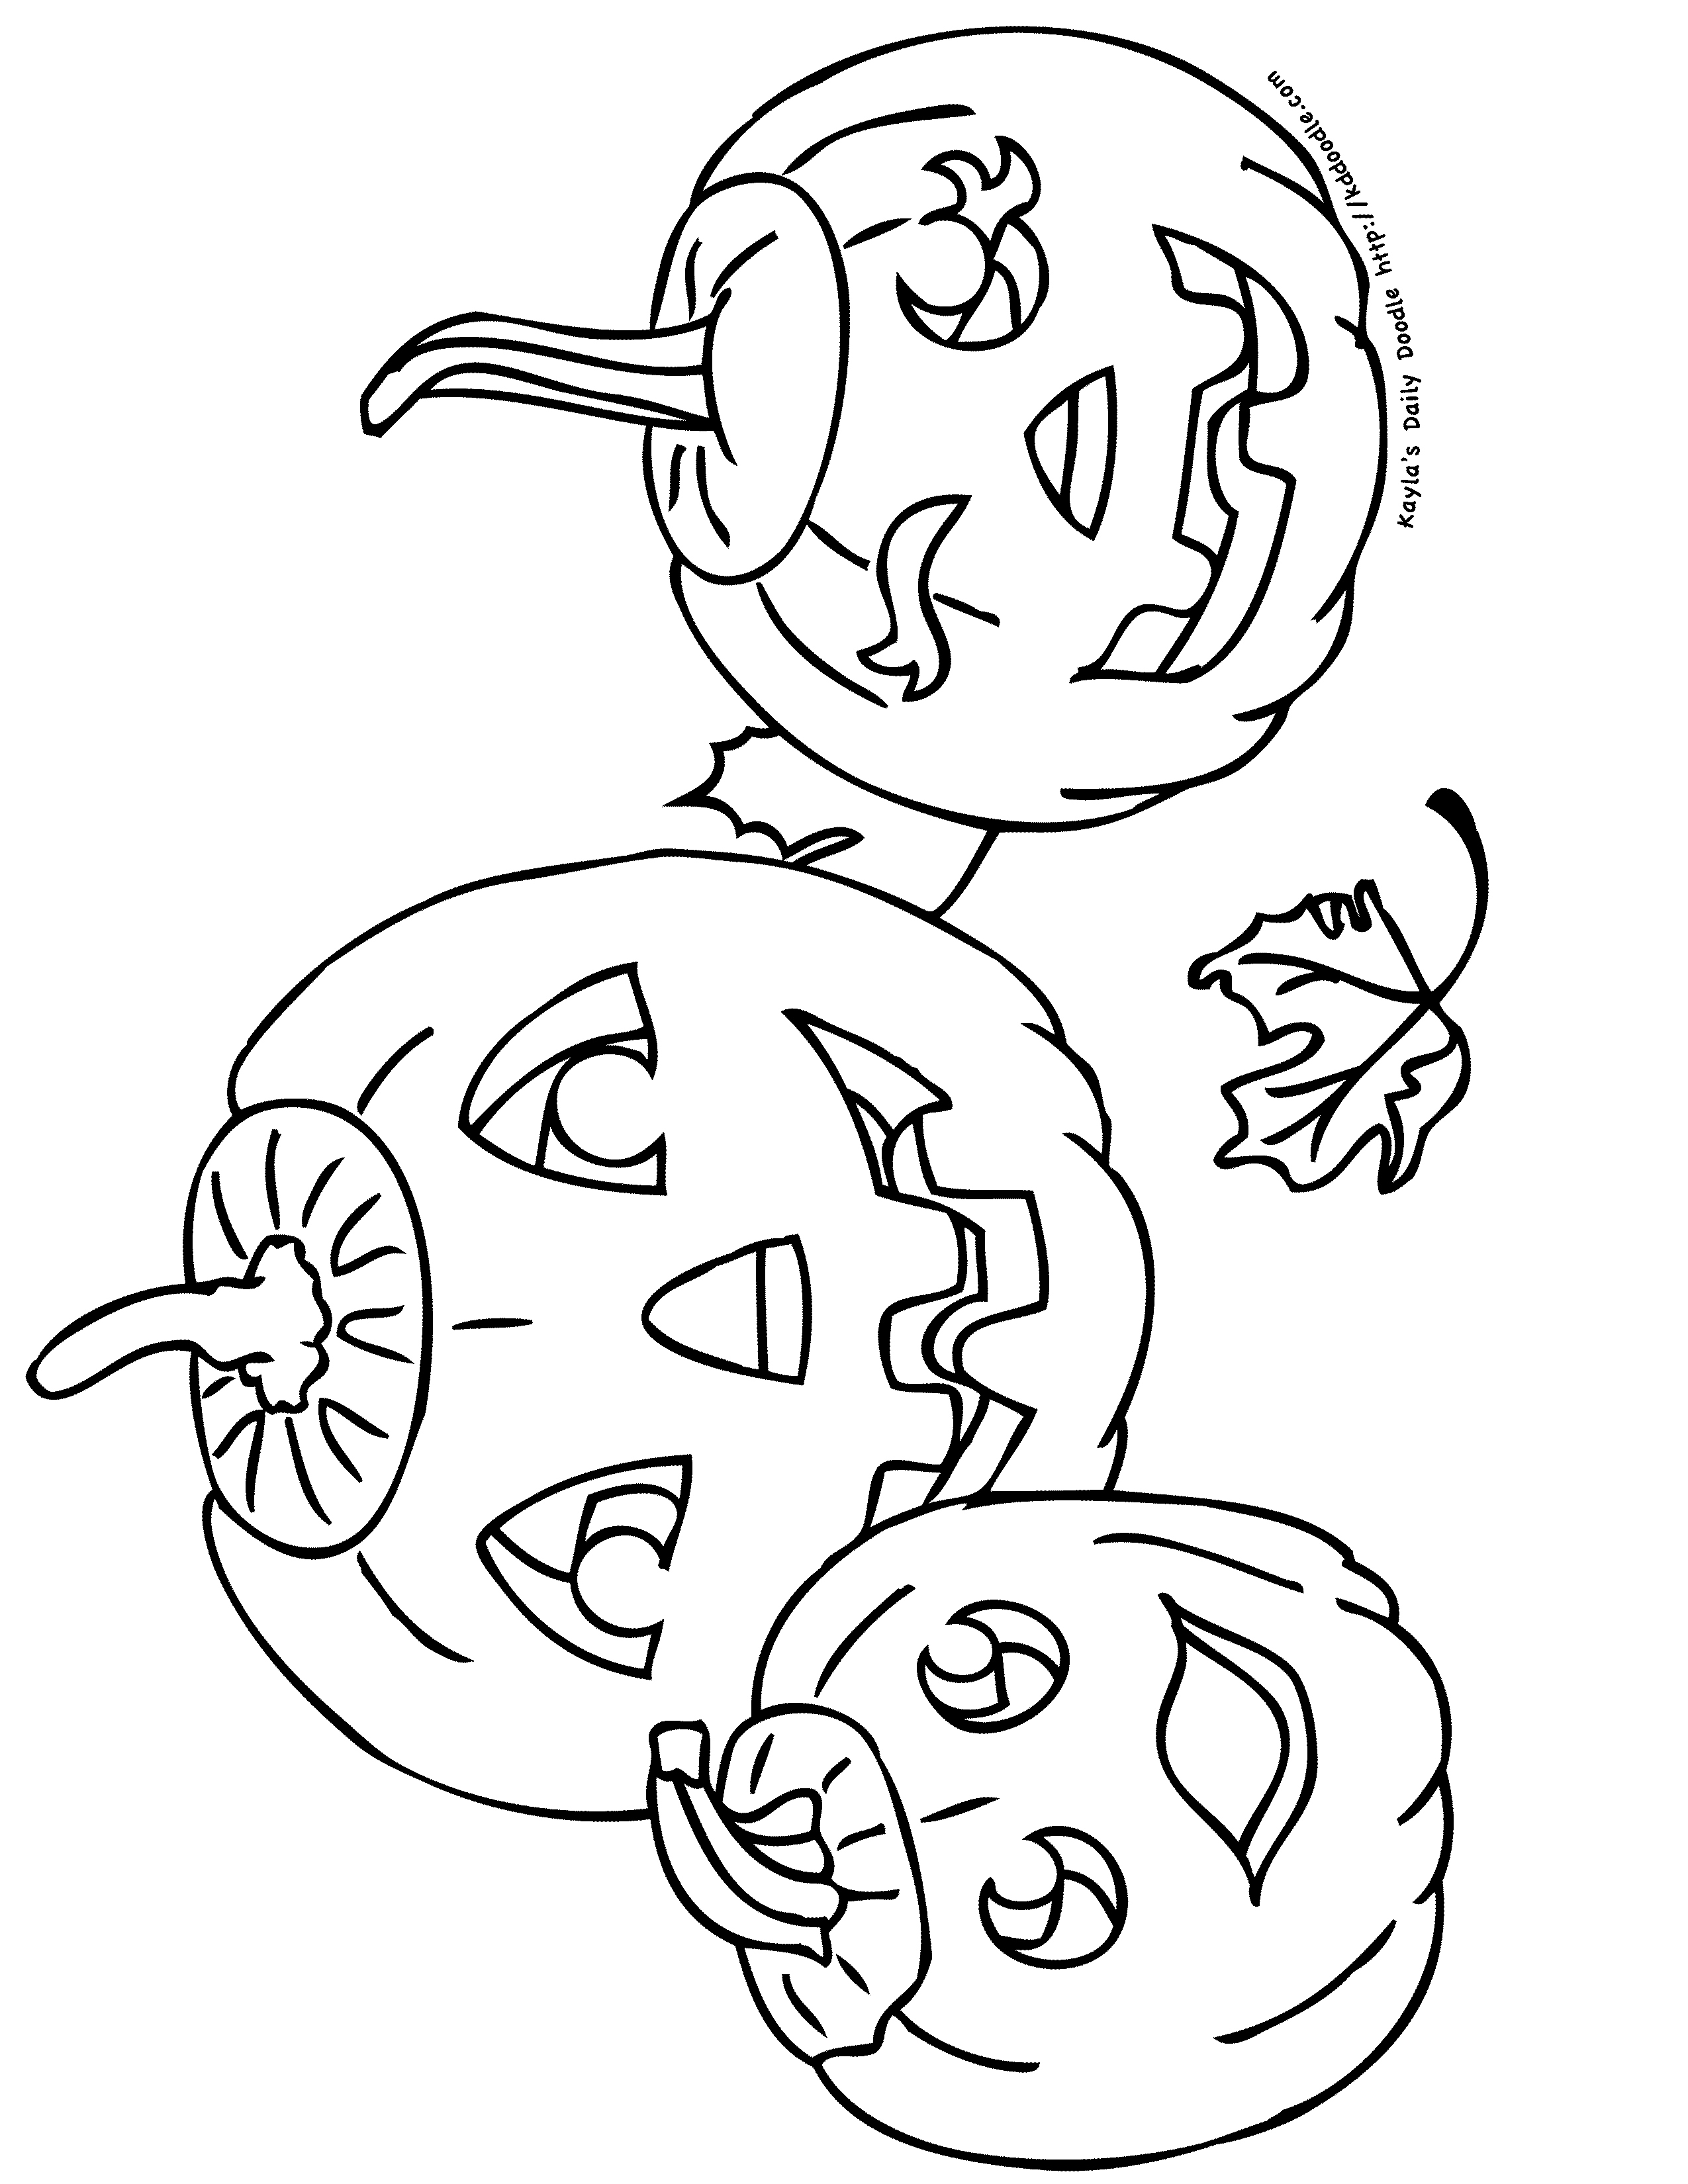 Simple Jack O Lantern Az Coloring Pages Sketch Coloring Page